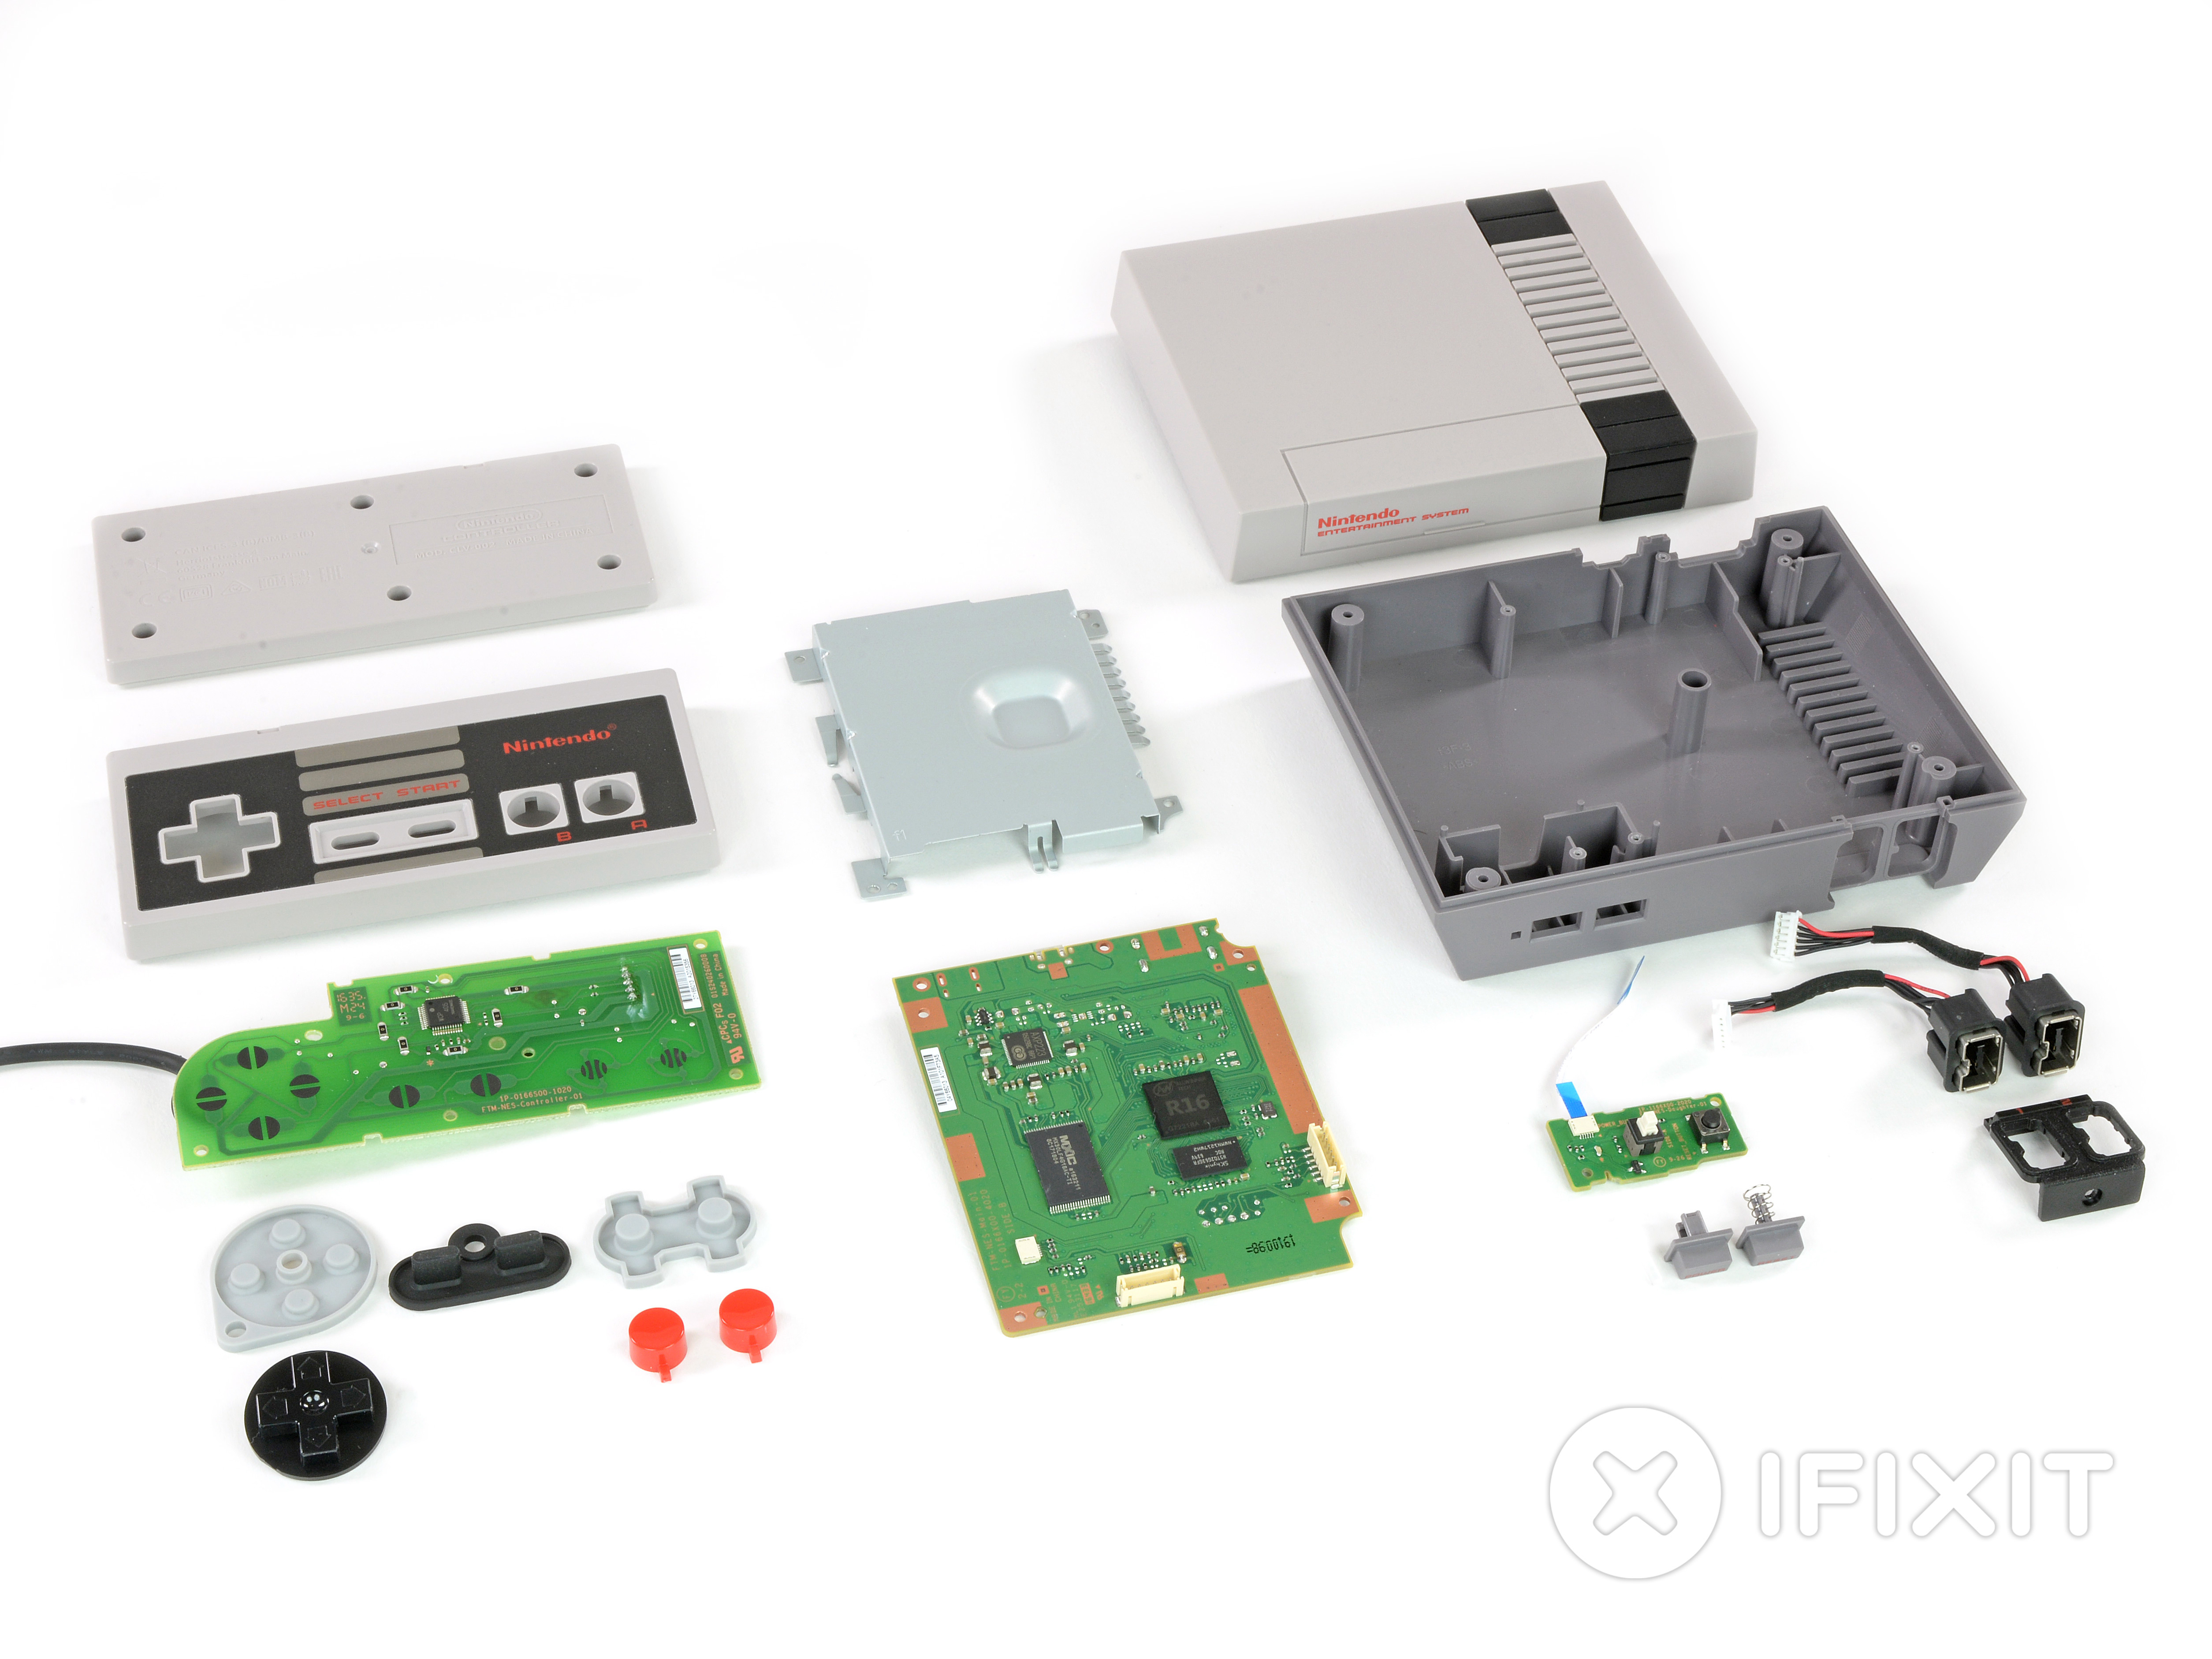 Nintendo Classic Mini Nes Teardown Ifixit Free Download Electronic Workbench 512 Full Version